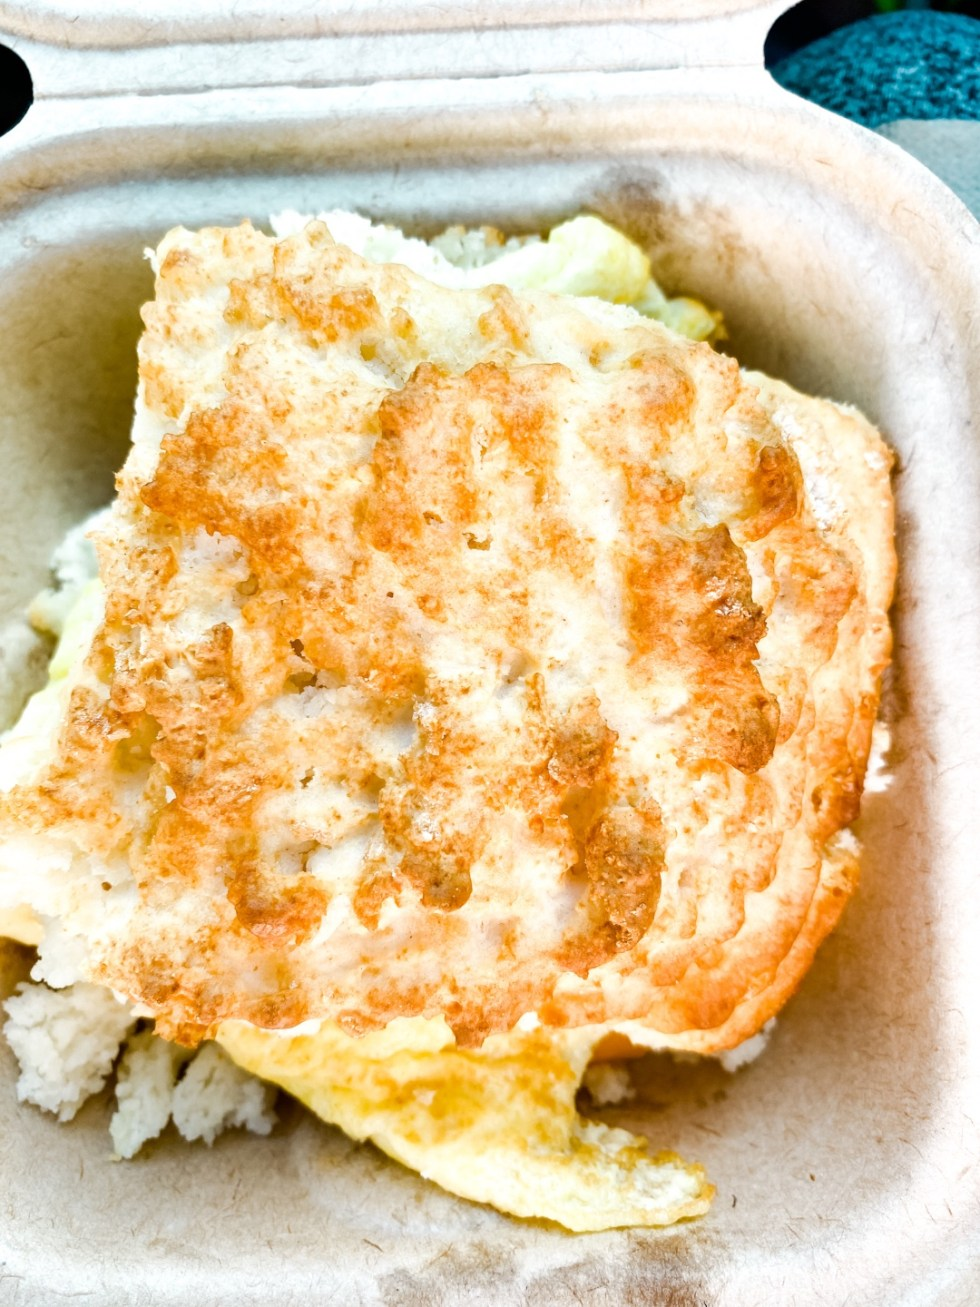 Weekend In Asheville by popular NC travel blog, I'm Fixin' To: image of a breakfast sandwich.